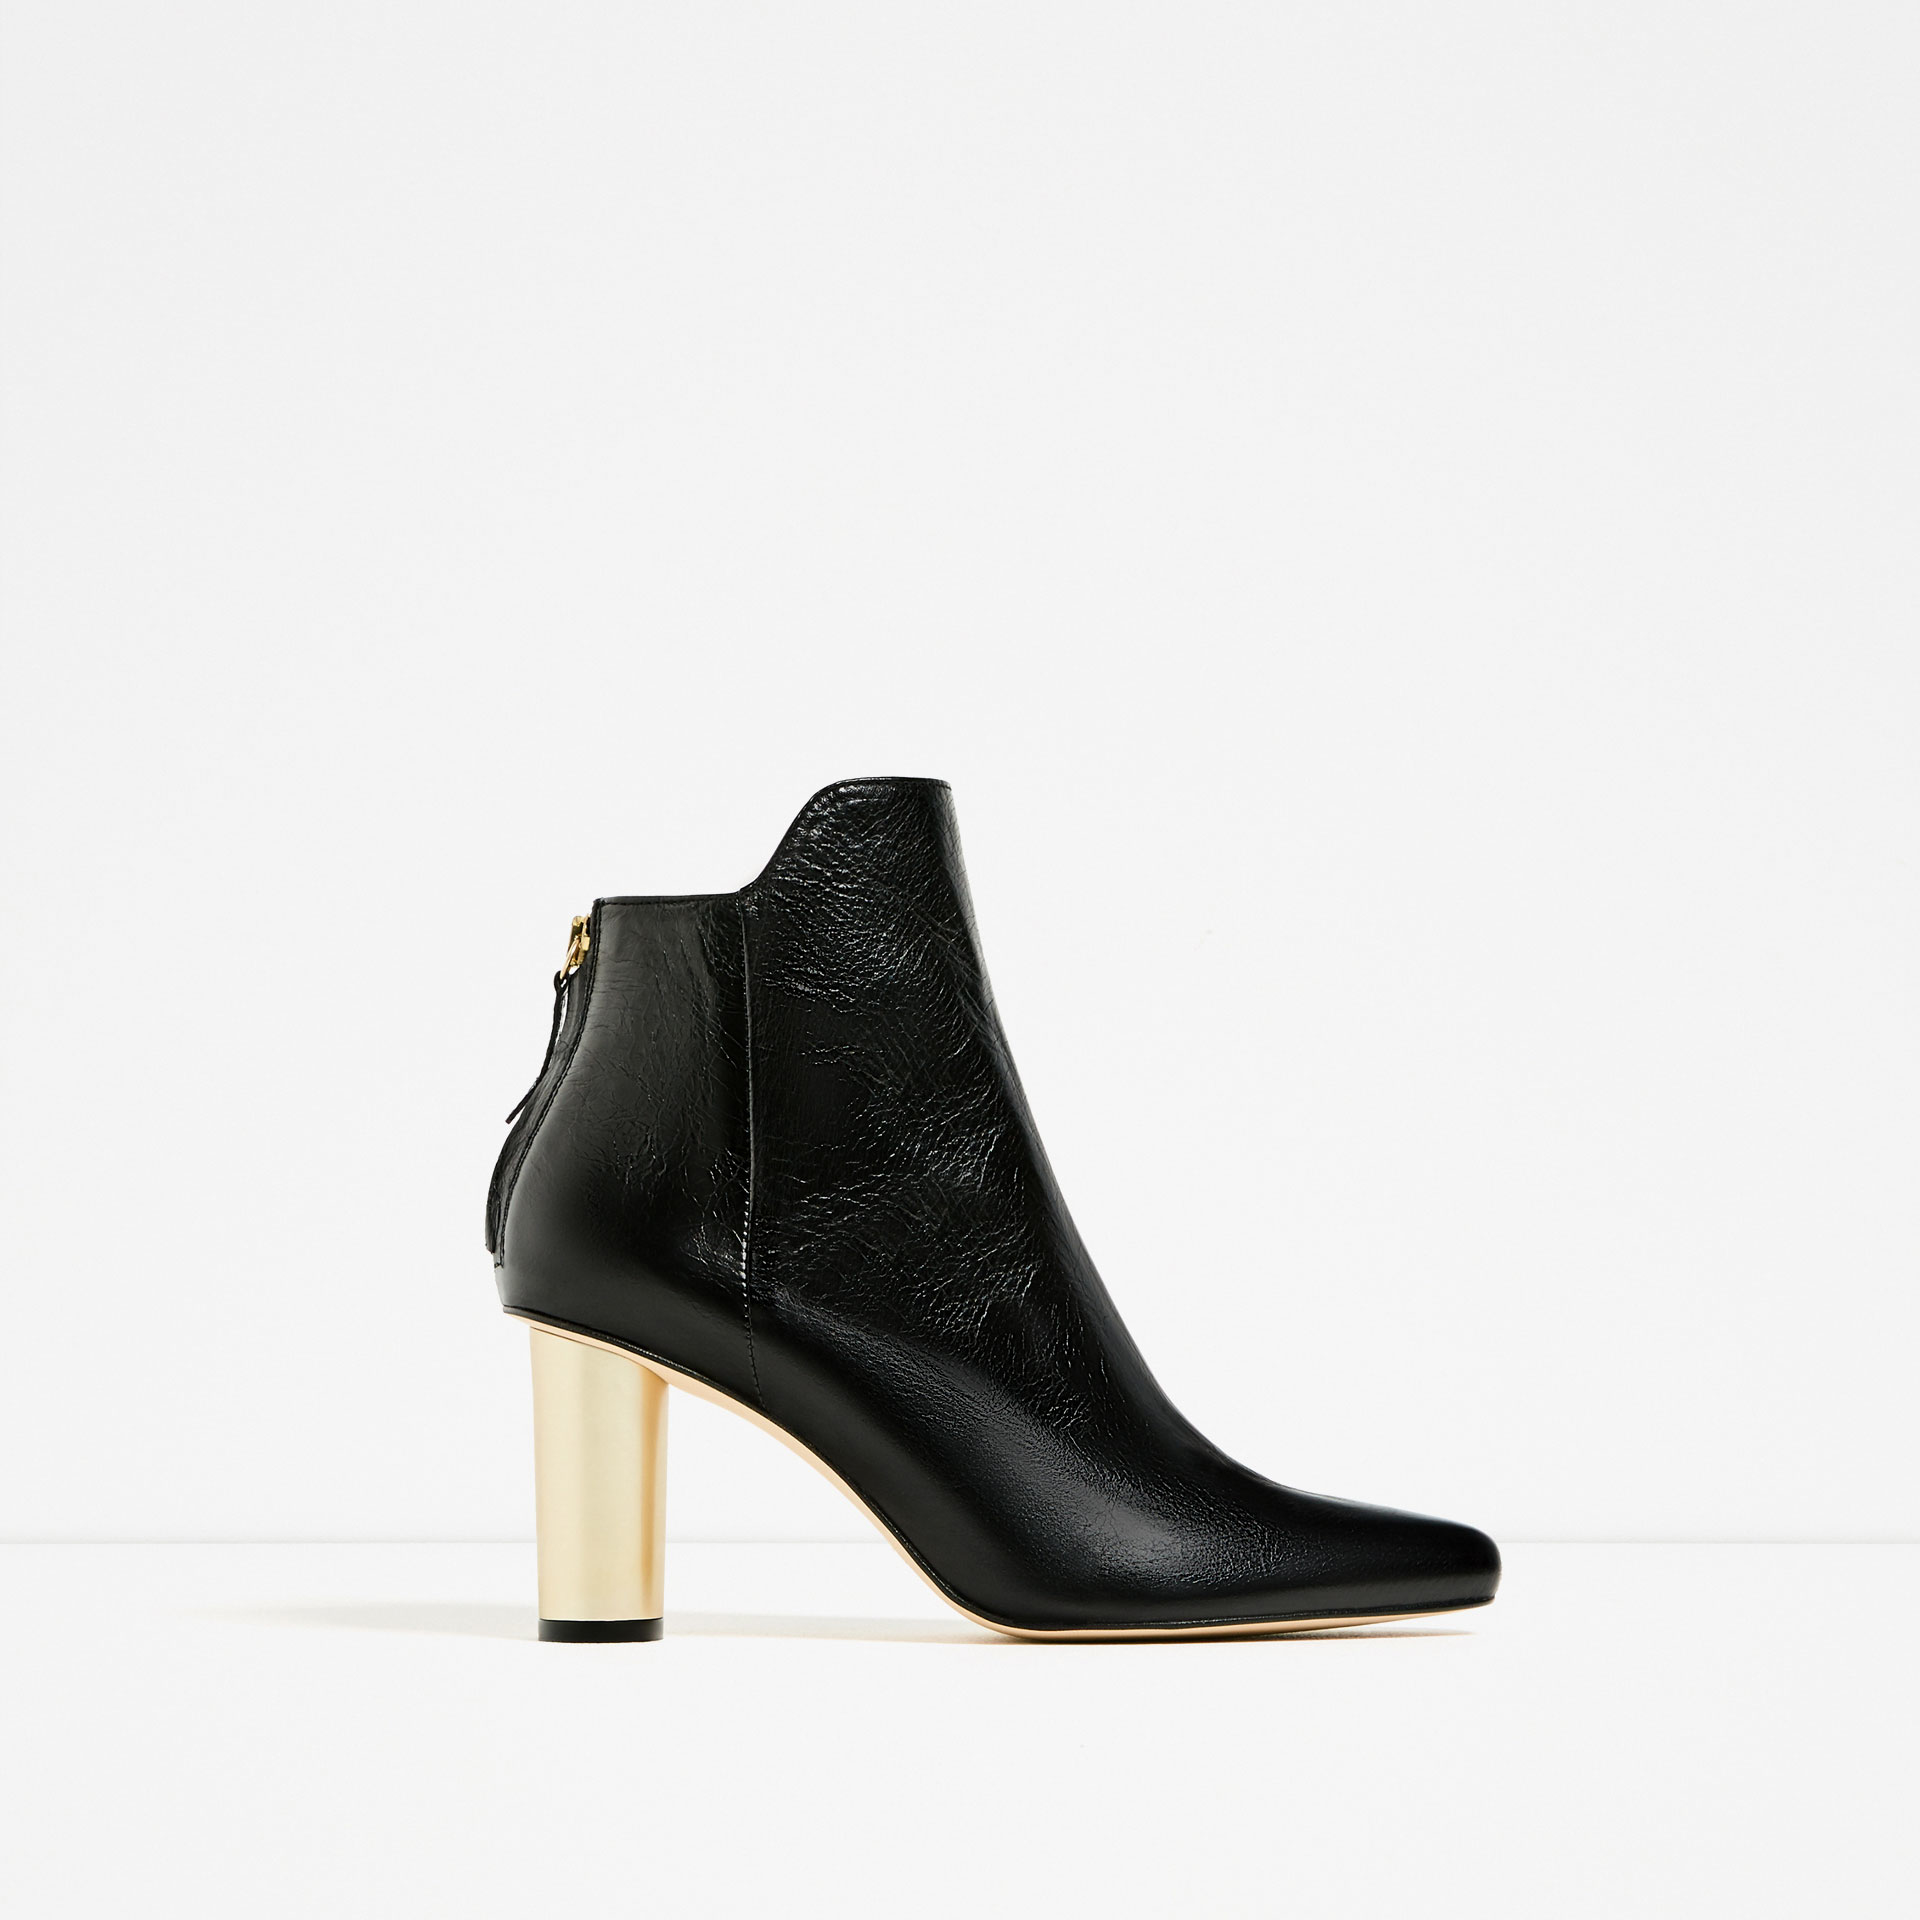 Zara Laminated High Heel Leather Ankle Boots Lyst